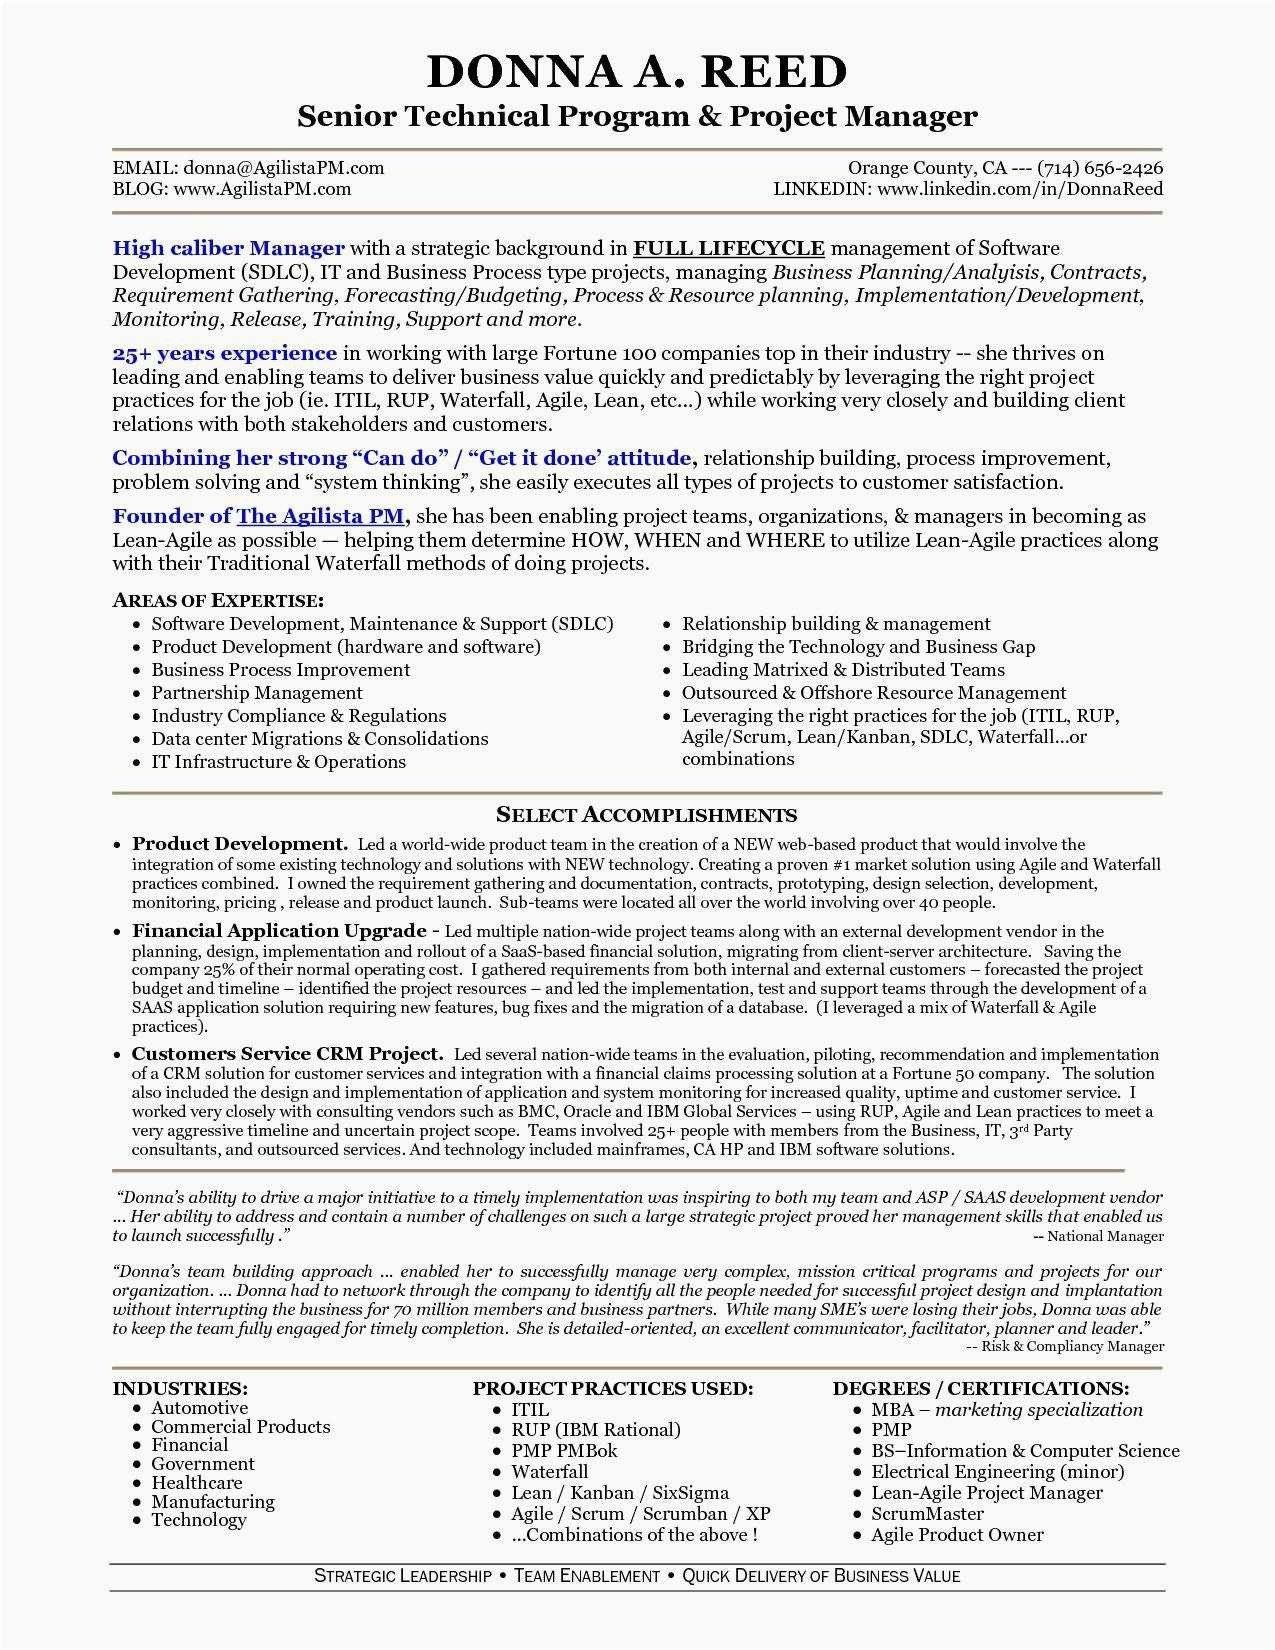 Computer Science Student Resume Awesome New Lean Six Sigma Resume Examples 50ger Project Manager Resume Manager Resume Job Resume Examples